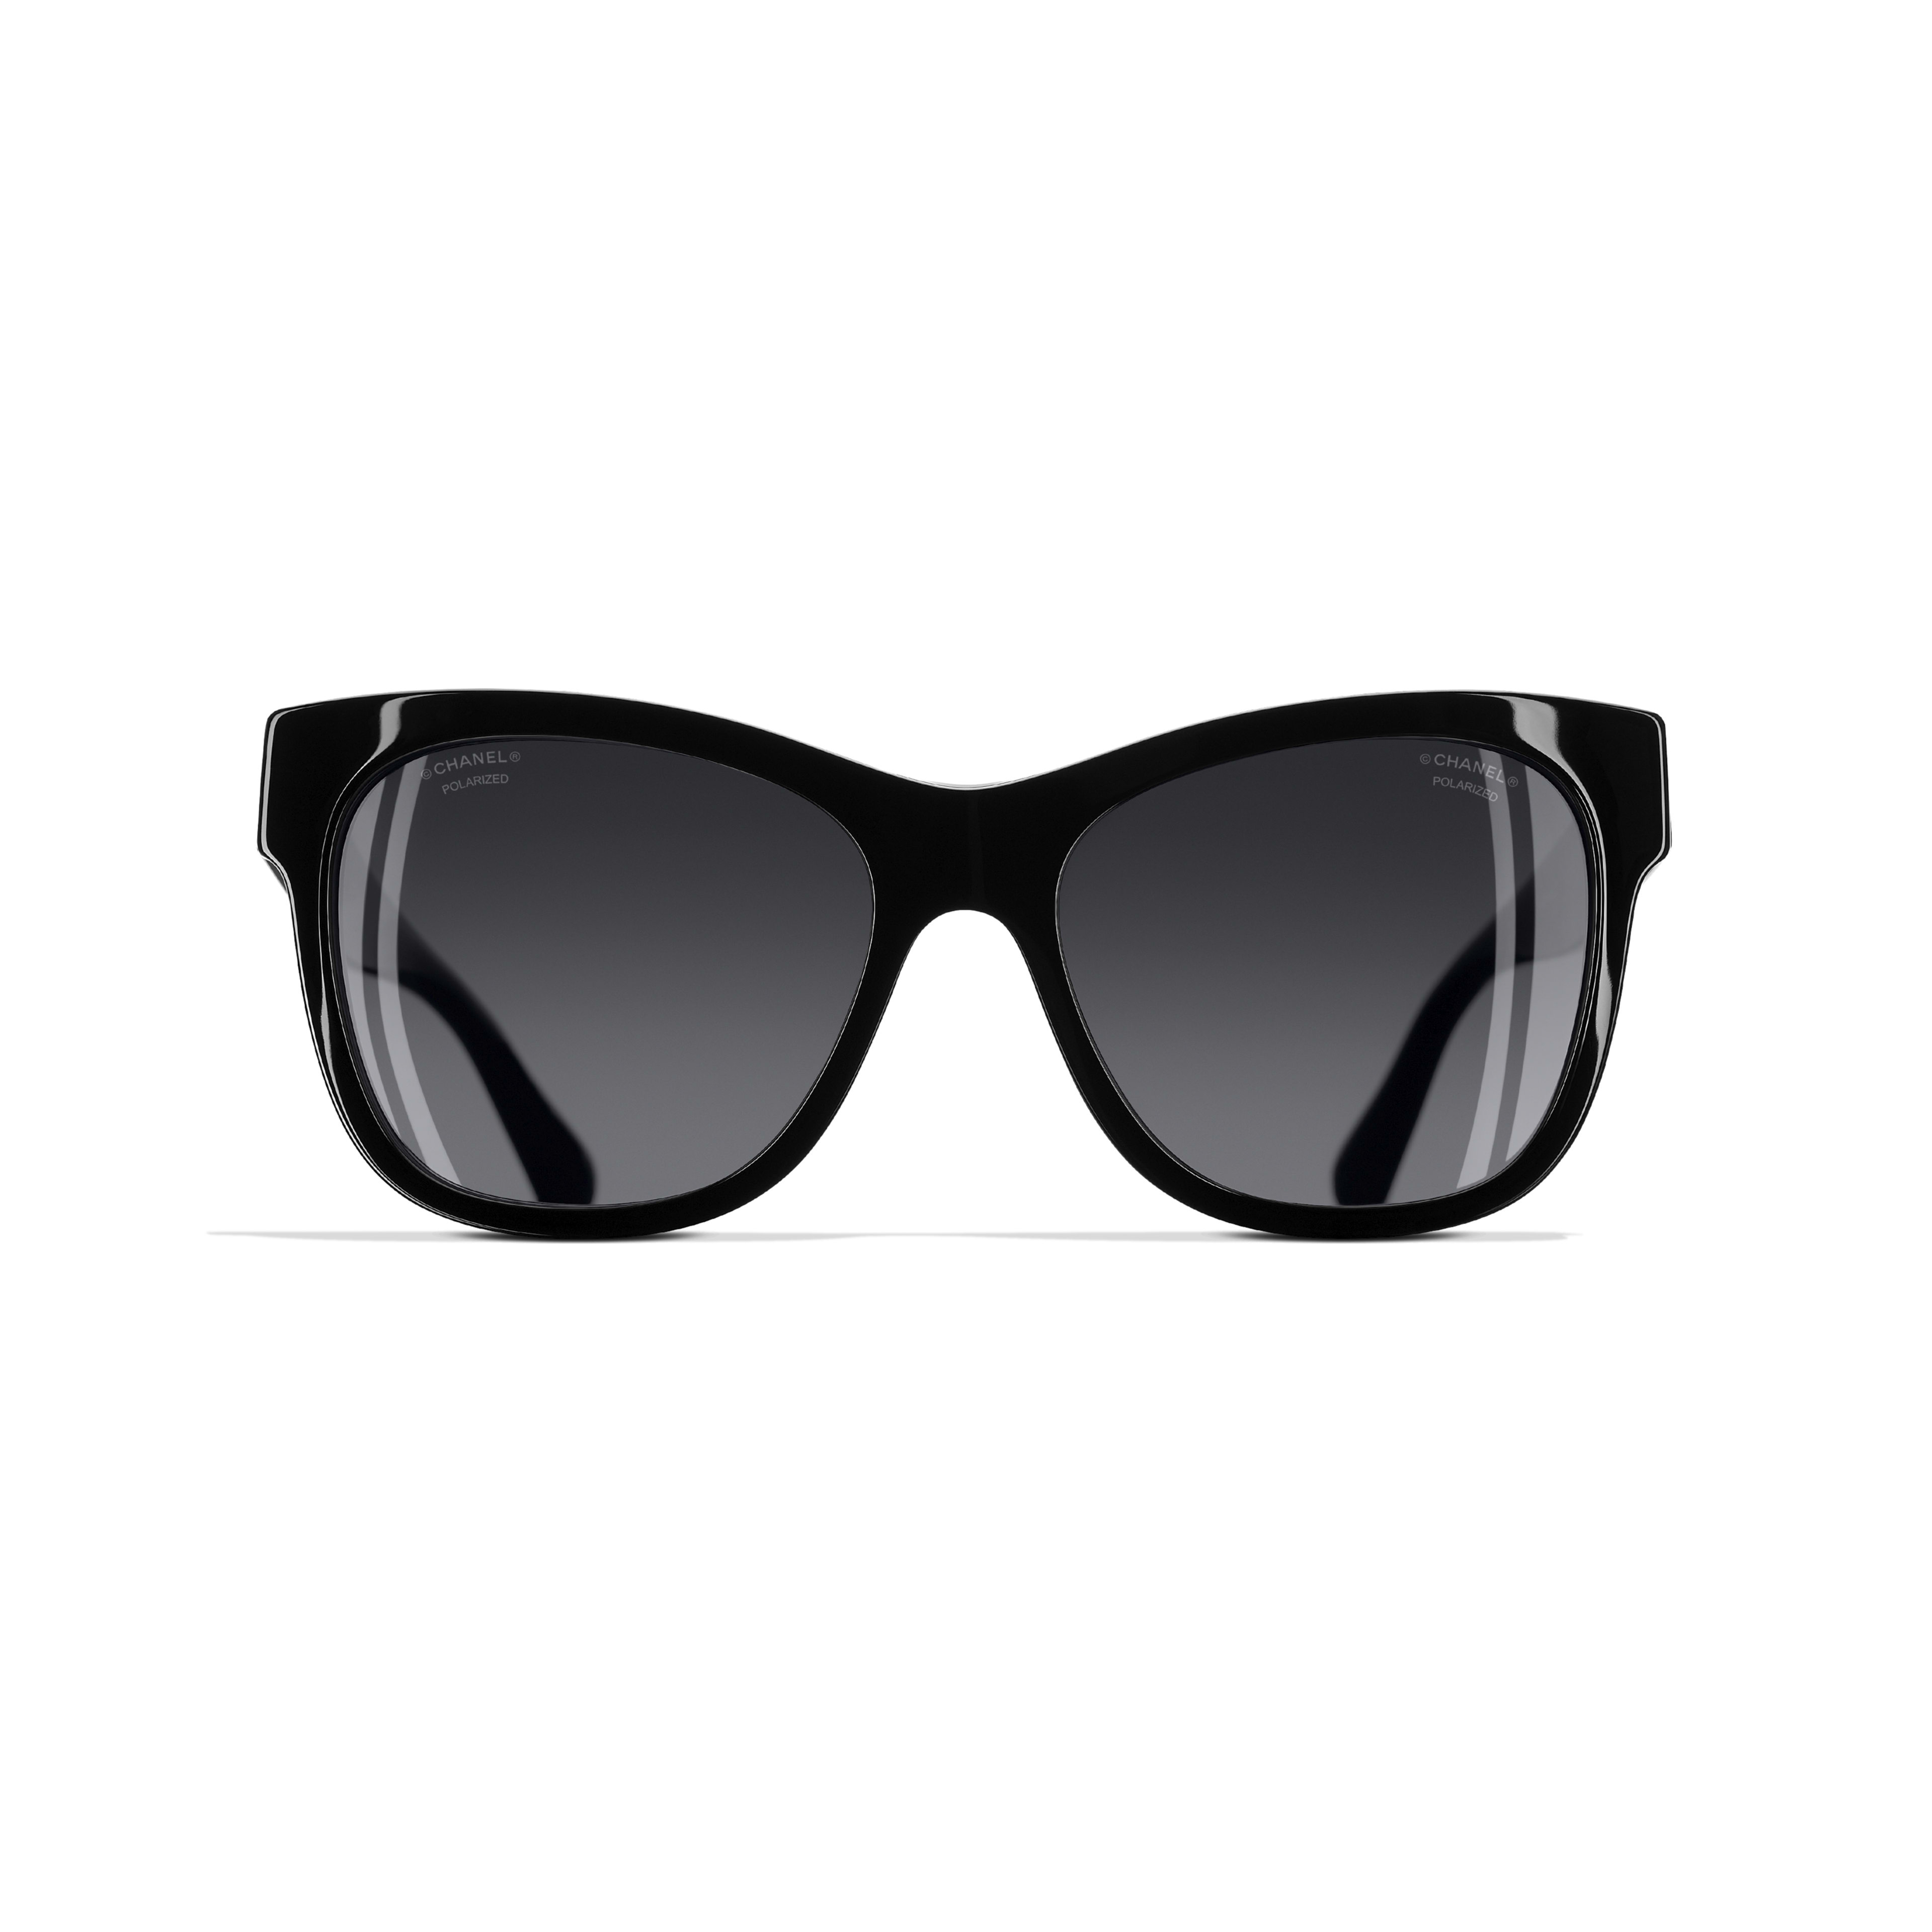 Square Sunglasses - Black - Acetate - Alternative view - see full sized version